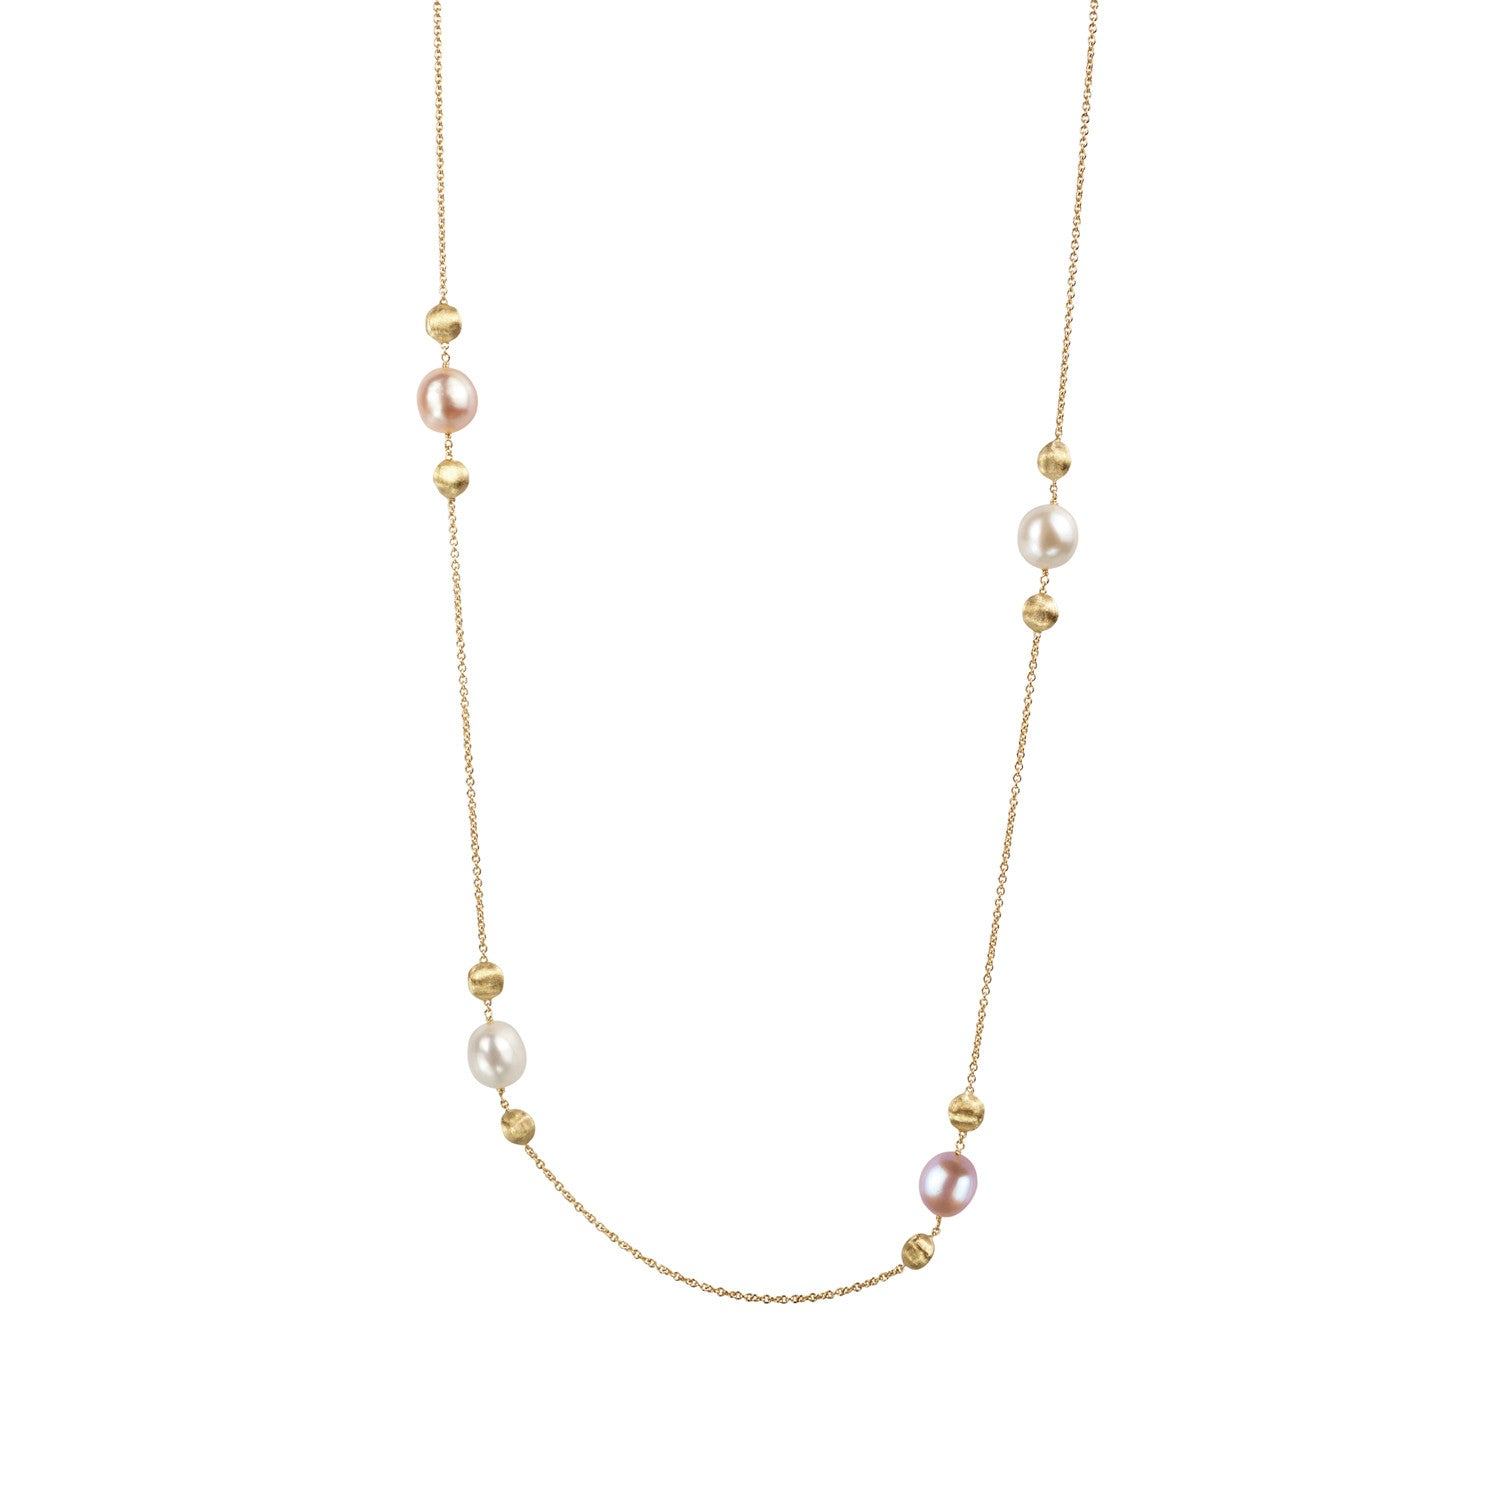 Africa Necklace in 18k Yellow Gold with Pearls - 92cm - Orsini Jewellers NZ